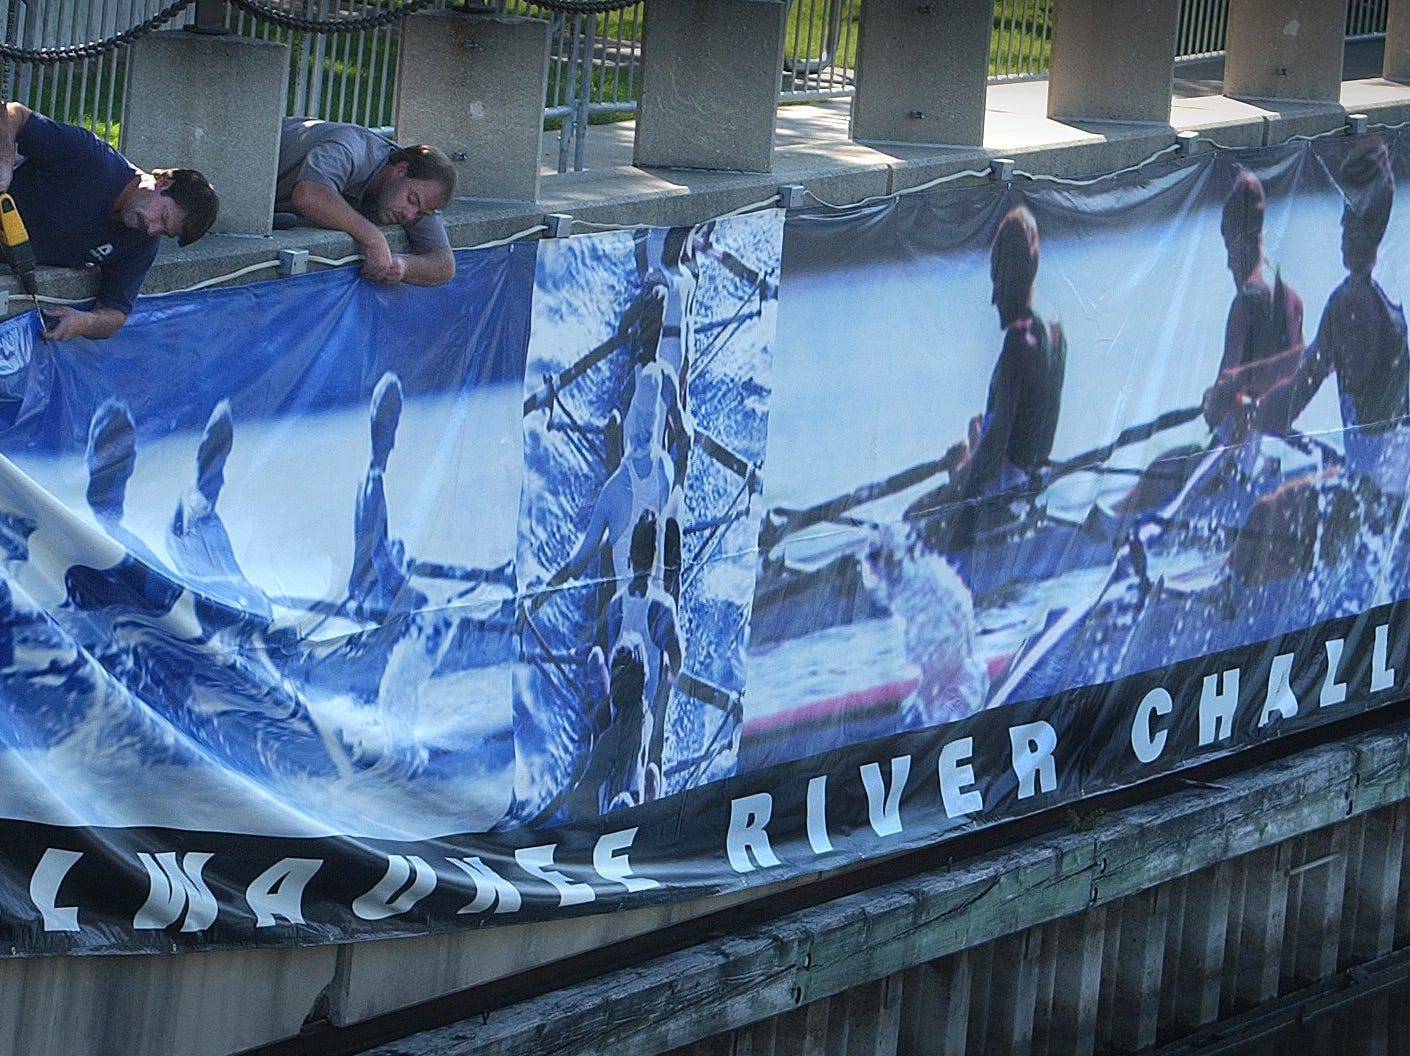 Marcus Center for the performing arts employees Rick Larson, left, and Mike Weber hang a giant banner behind the center in preparation for the upcoming Milwaukee River Challenge Saturday, Sept. 21, 2002, a collegiate crew race along the Milwaukee River in downton Milwaukee. A field of over 400 rowers -- including teams from Marquette University and the University of Wisconsin -- is expected for the competition. The Milwaukee River Challenge is a two-way race, approximately 2.2 miles in each direction, on the Milwaukee River from Buffalo St. to Humboldt Ave. and back.